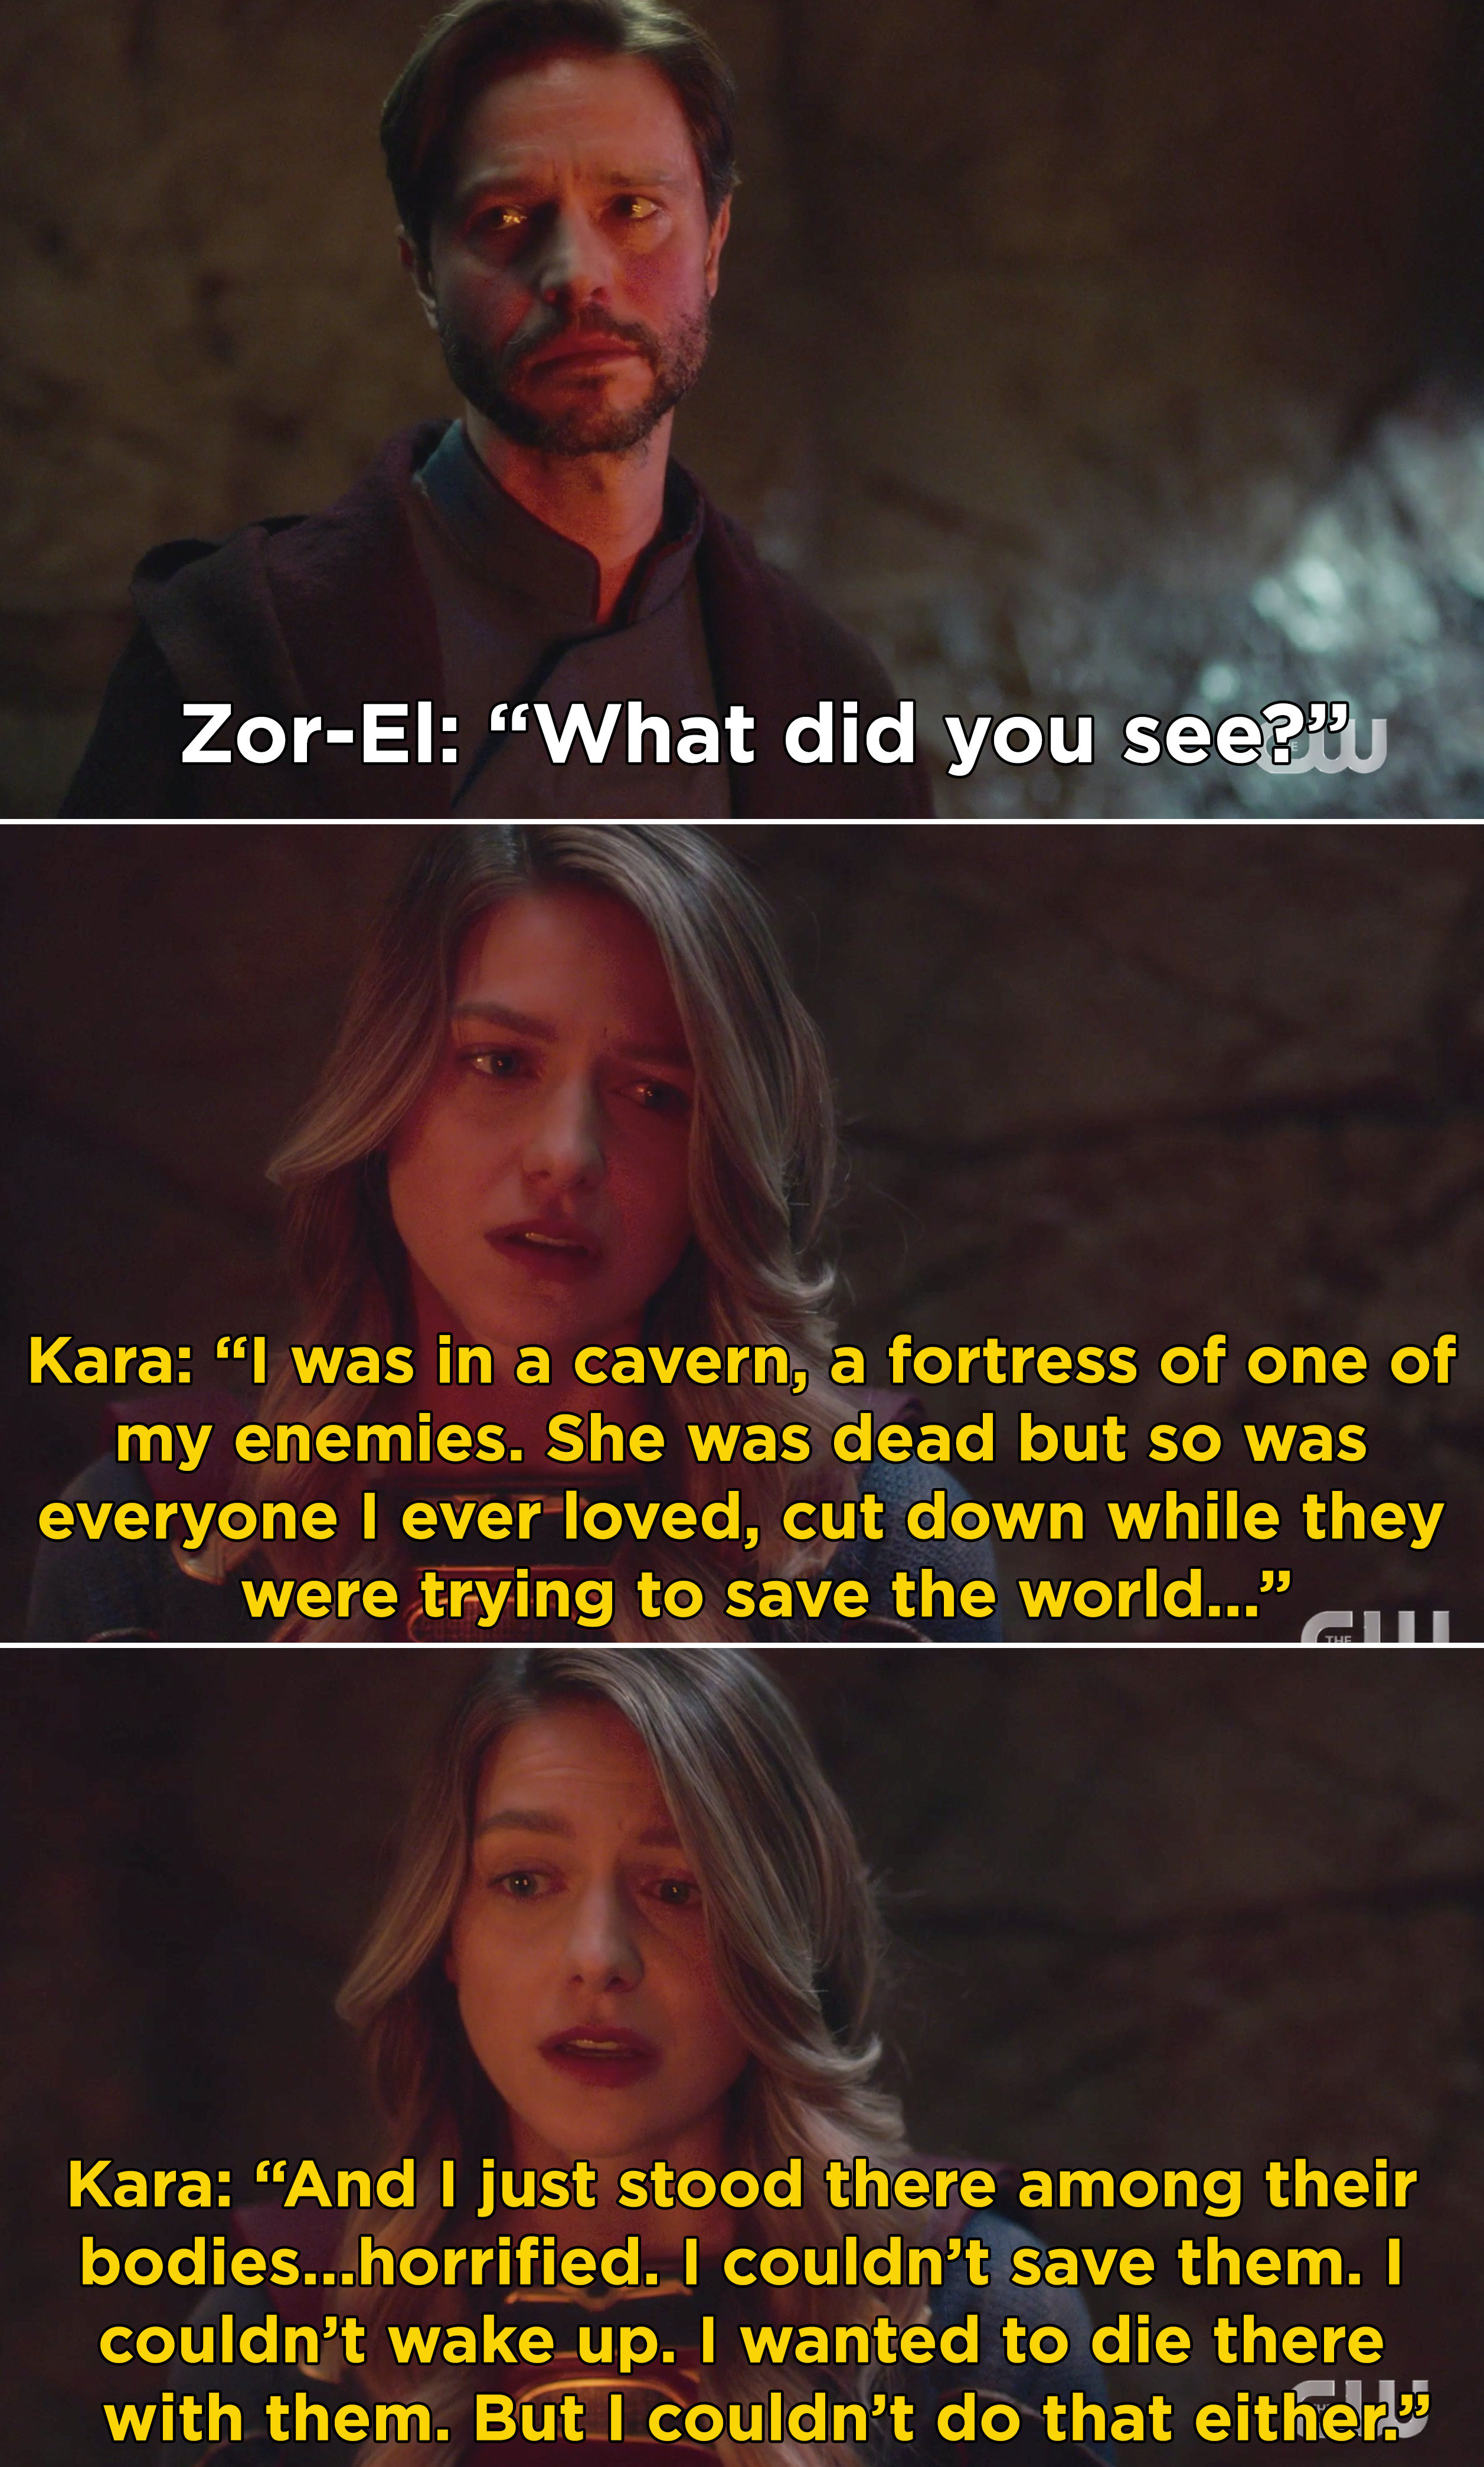 Kara explaining how she had a vision where she saw everyone she loved die and she wanted to die with them, but couldn't